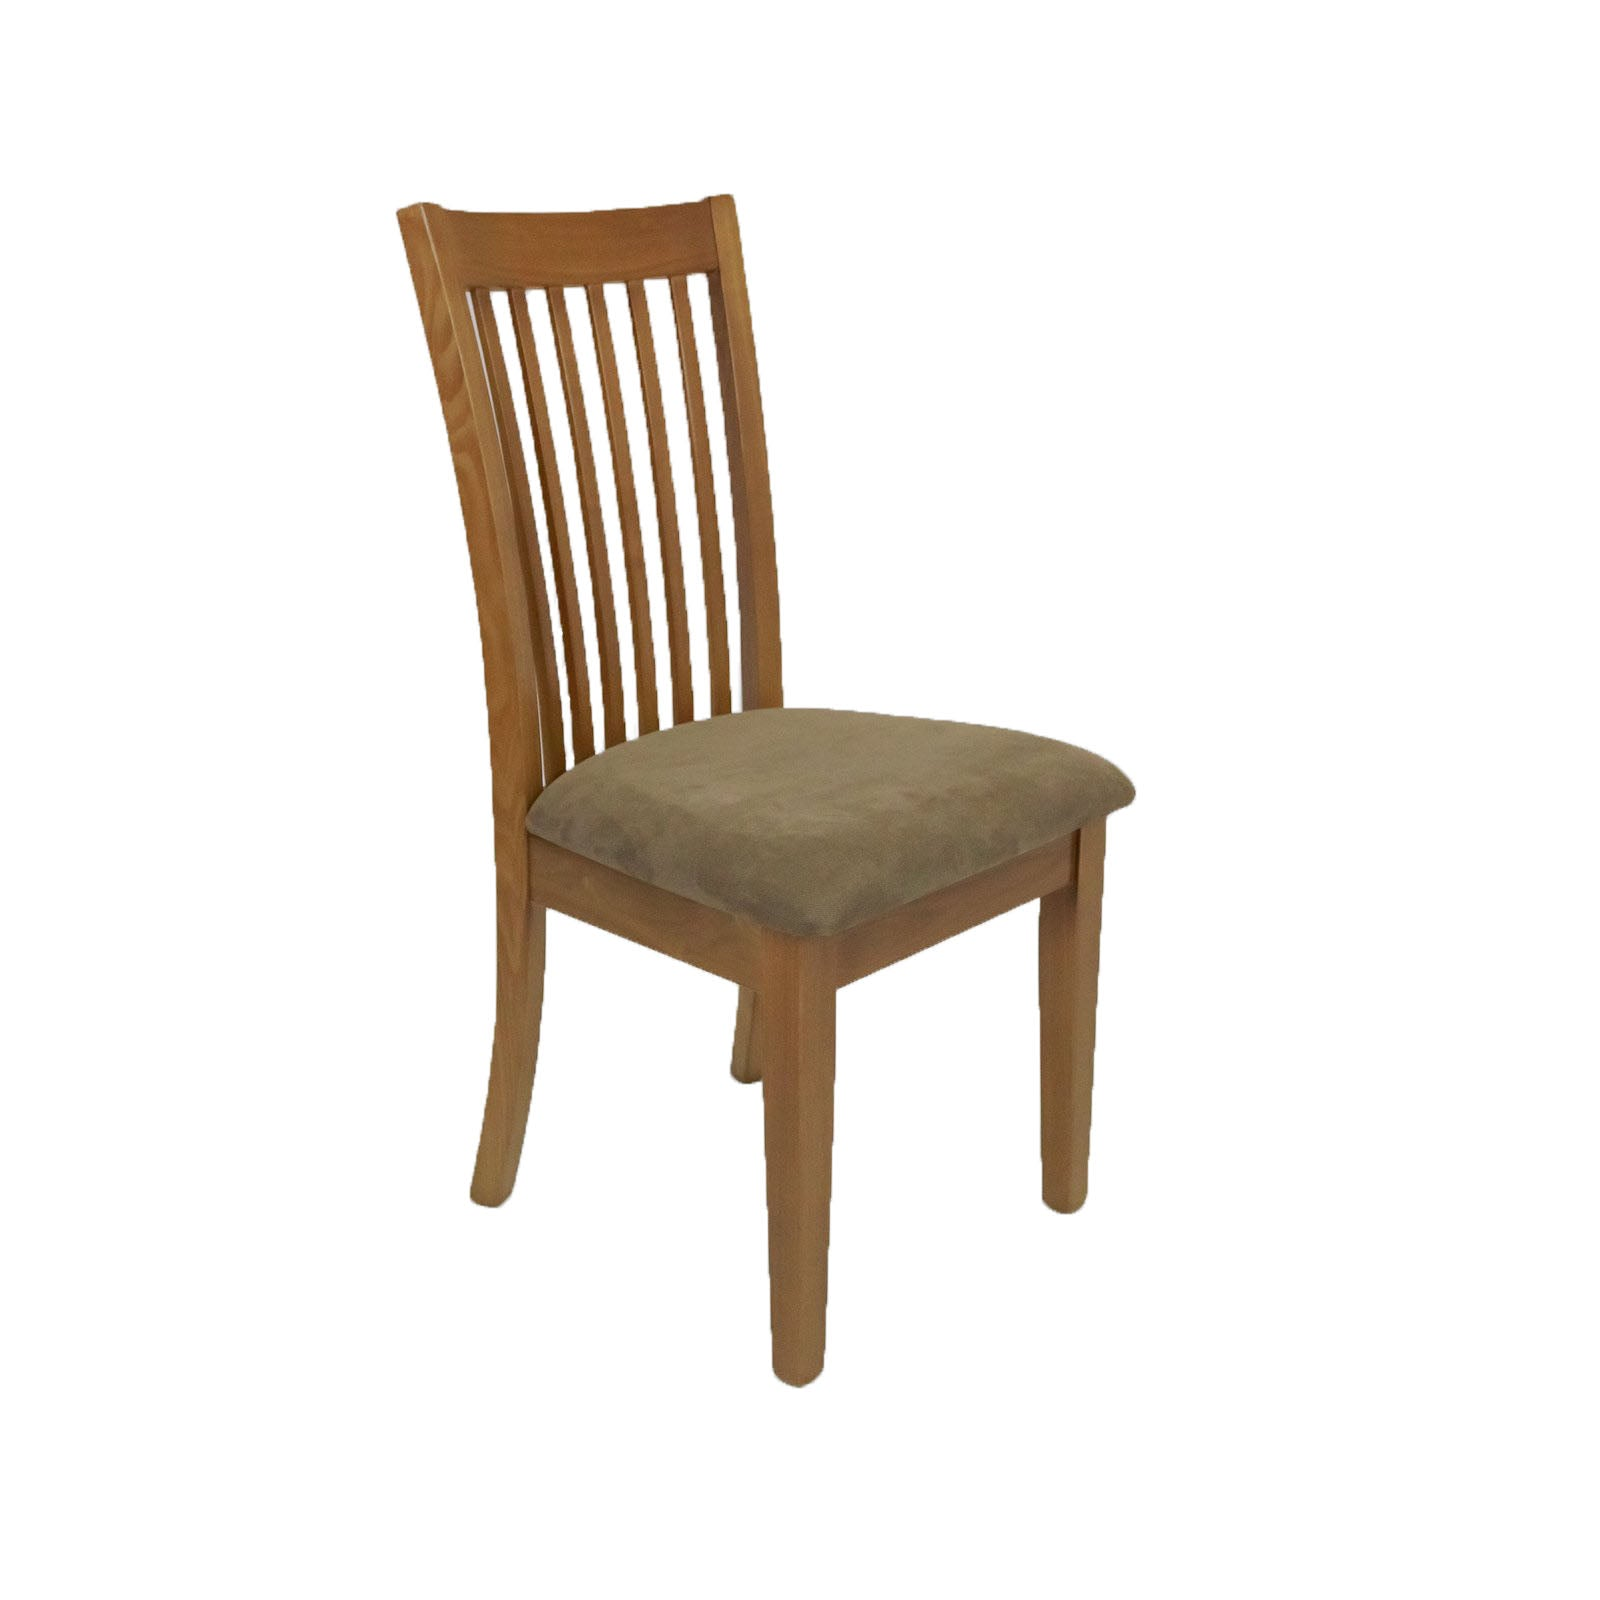 Chair - Sorrento design-Dining chair-Wildwood Designs Furniture